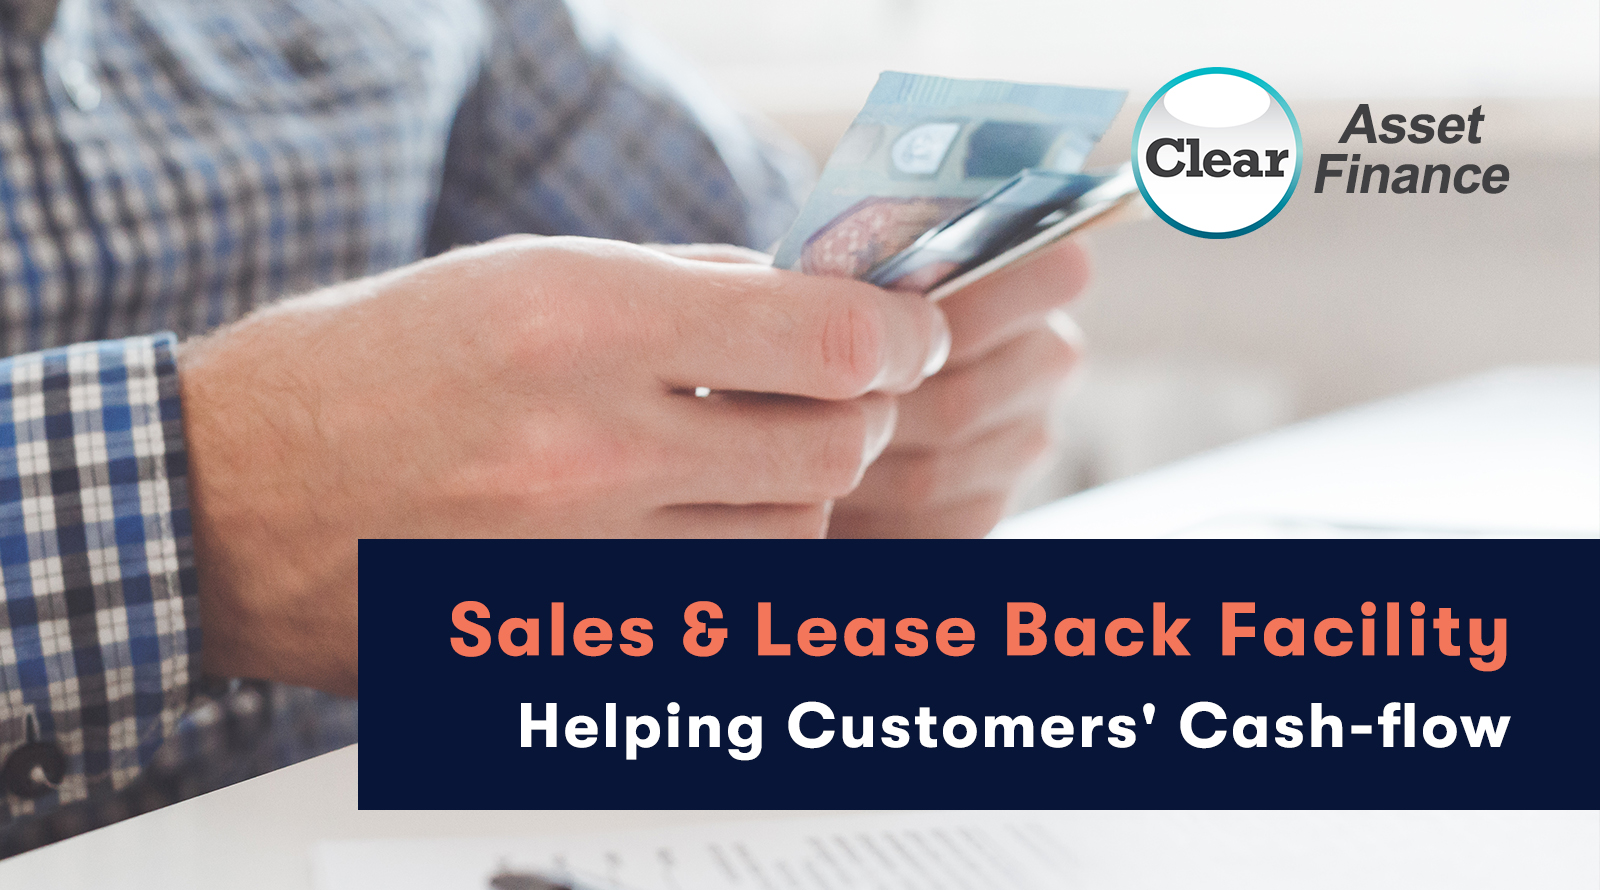 Sales & Lease Back Facility: Helping Cash-flow